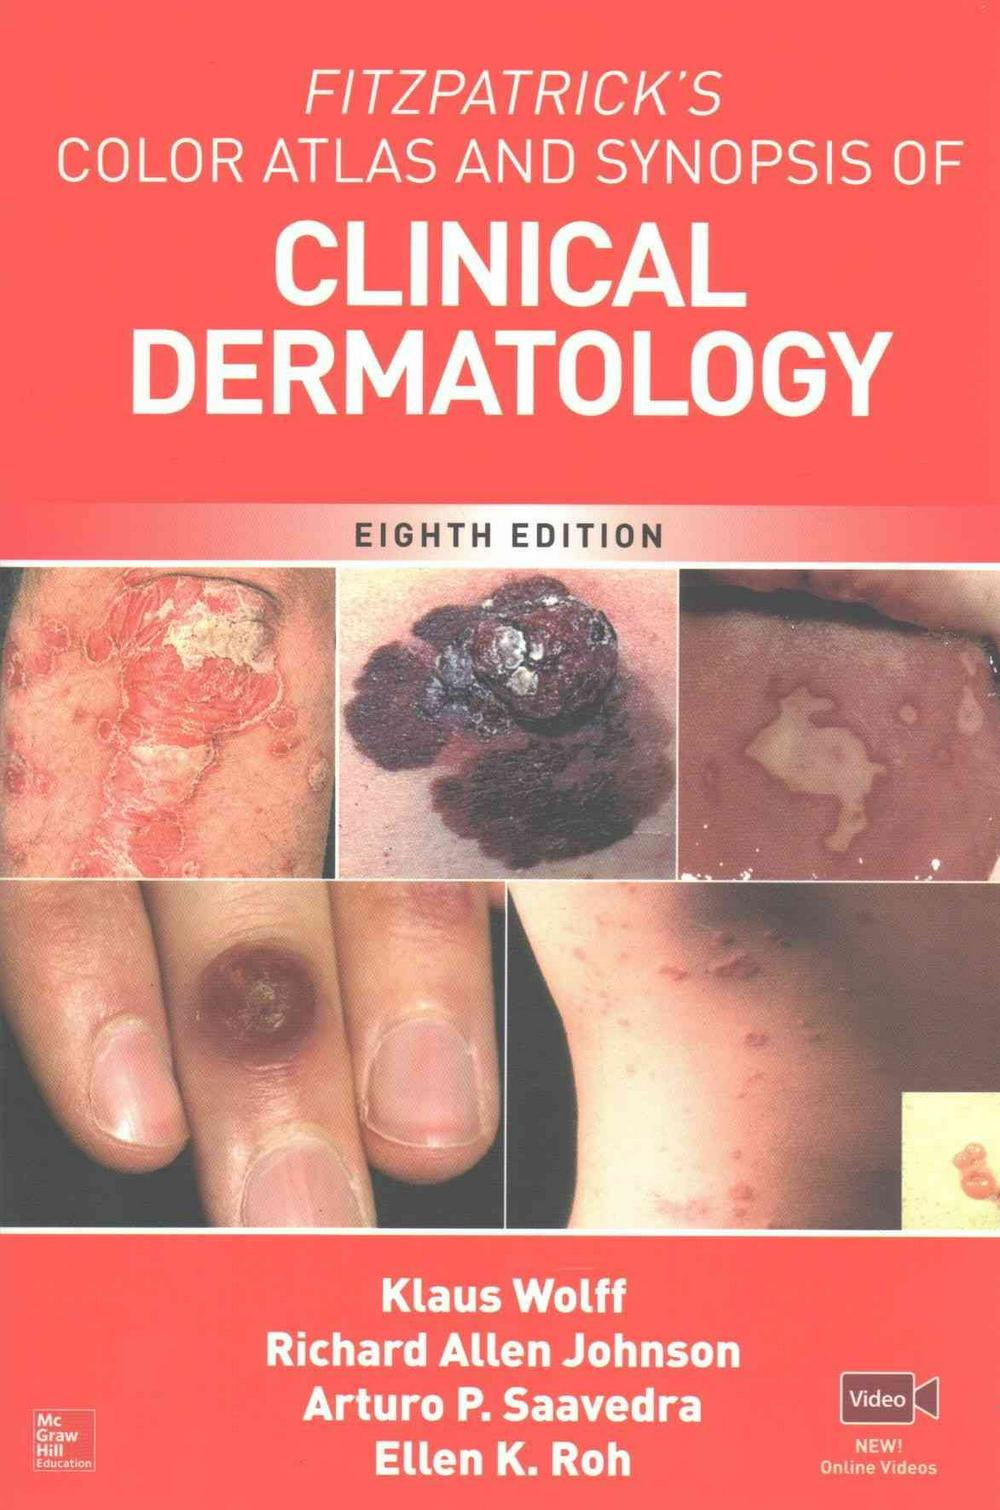 Fitzpatrick's Color Atlas and Synopsis of Clinical Dermatology, Eighth Edition